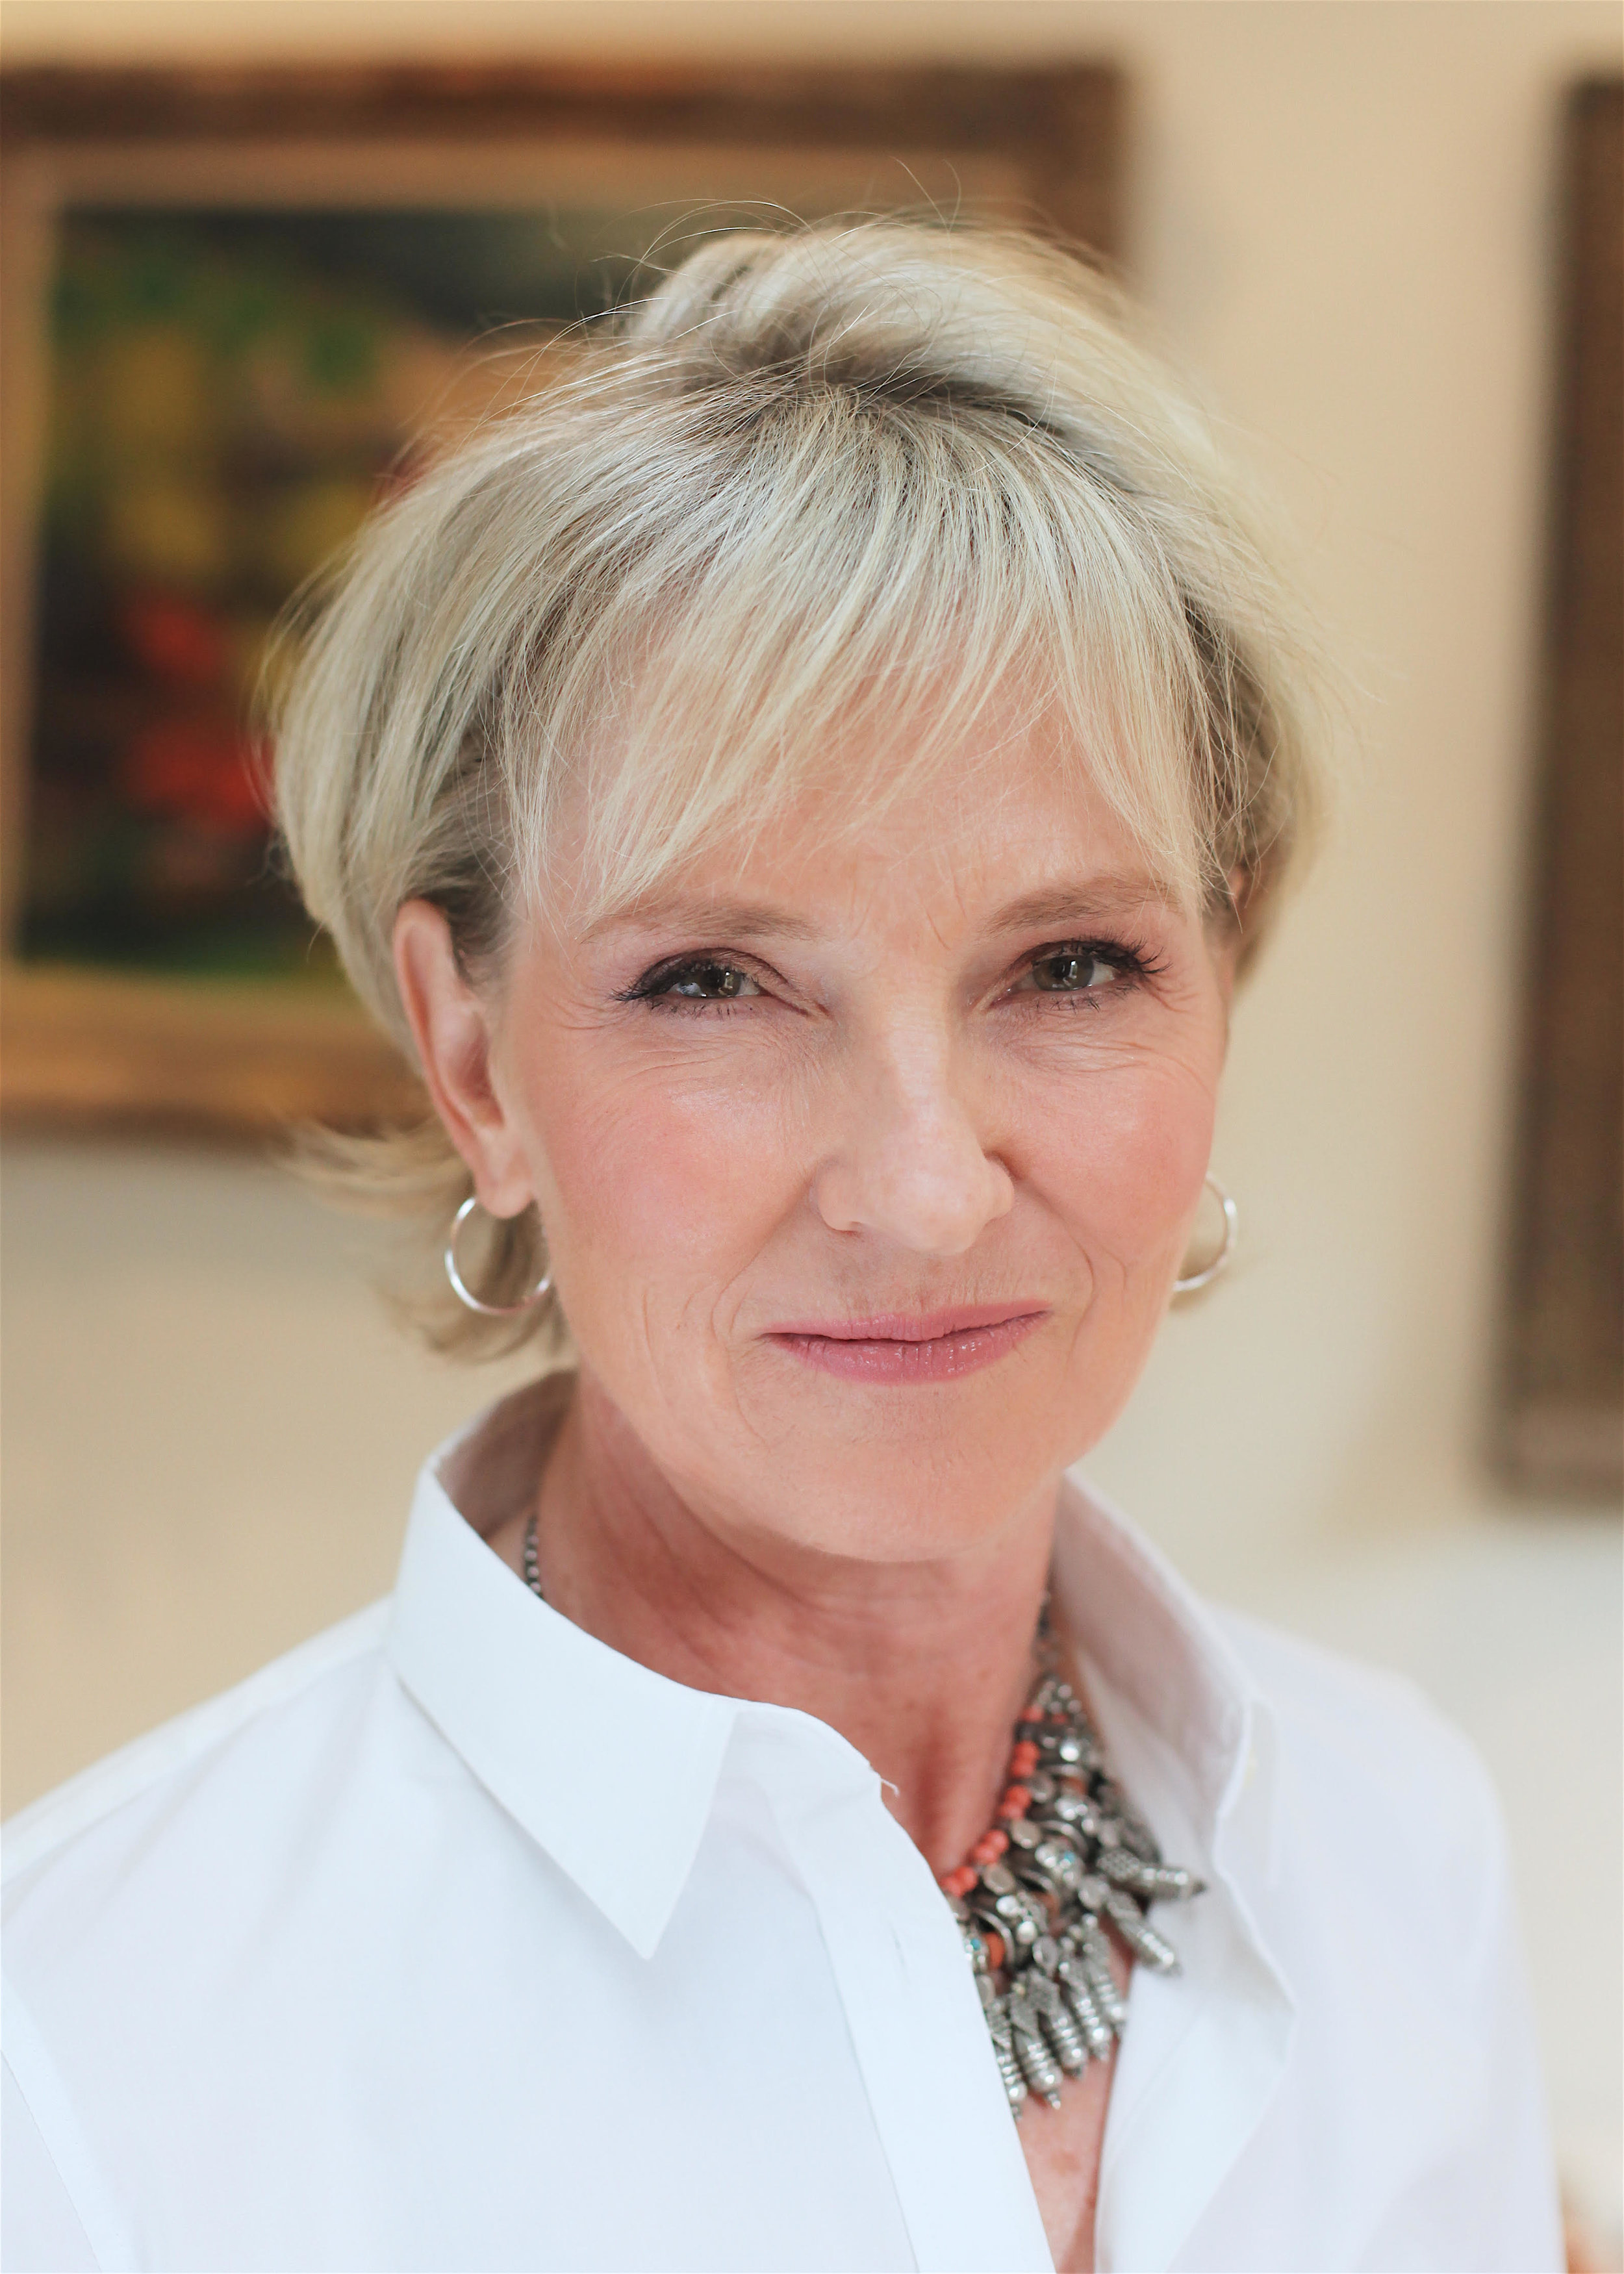 Grief psychotherapist, Julia Samuel MBE, has spent 25 years working with bereaved families